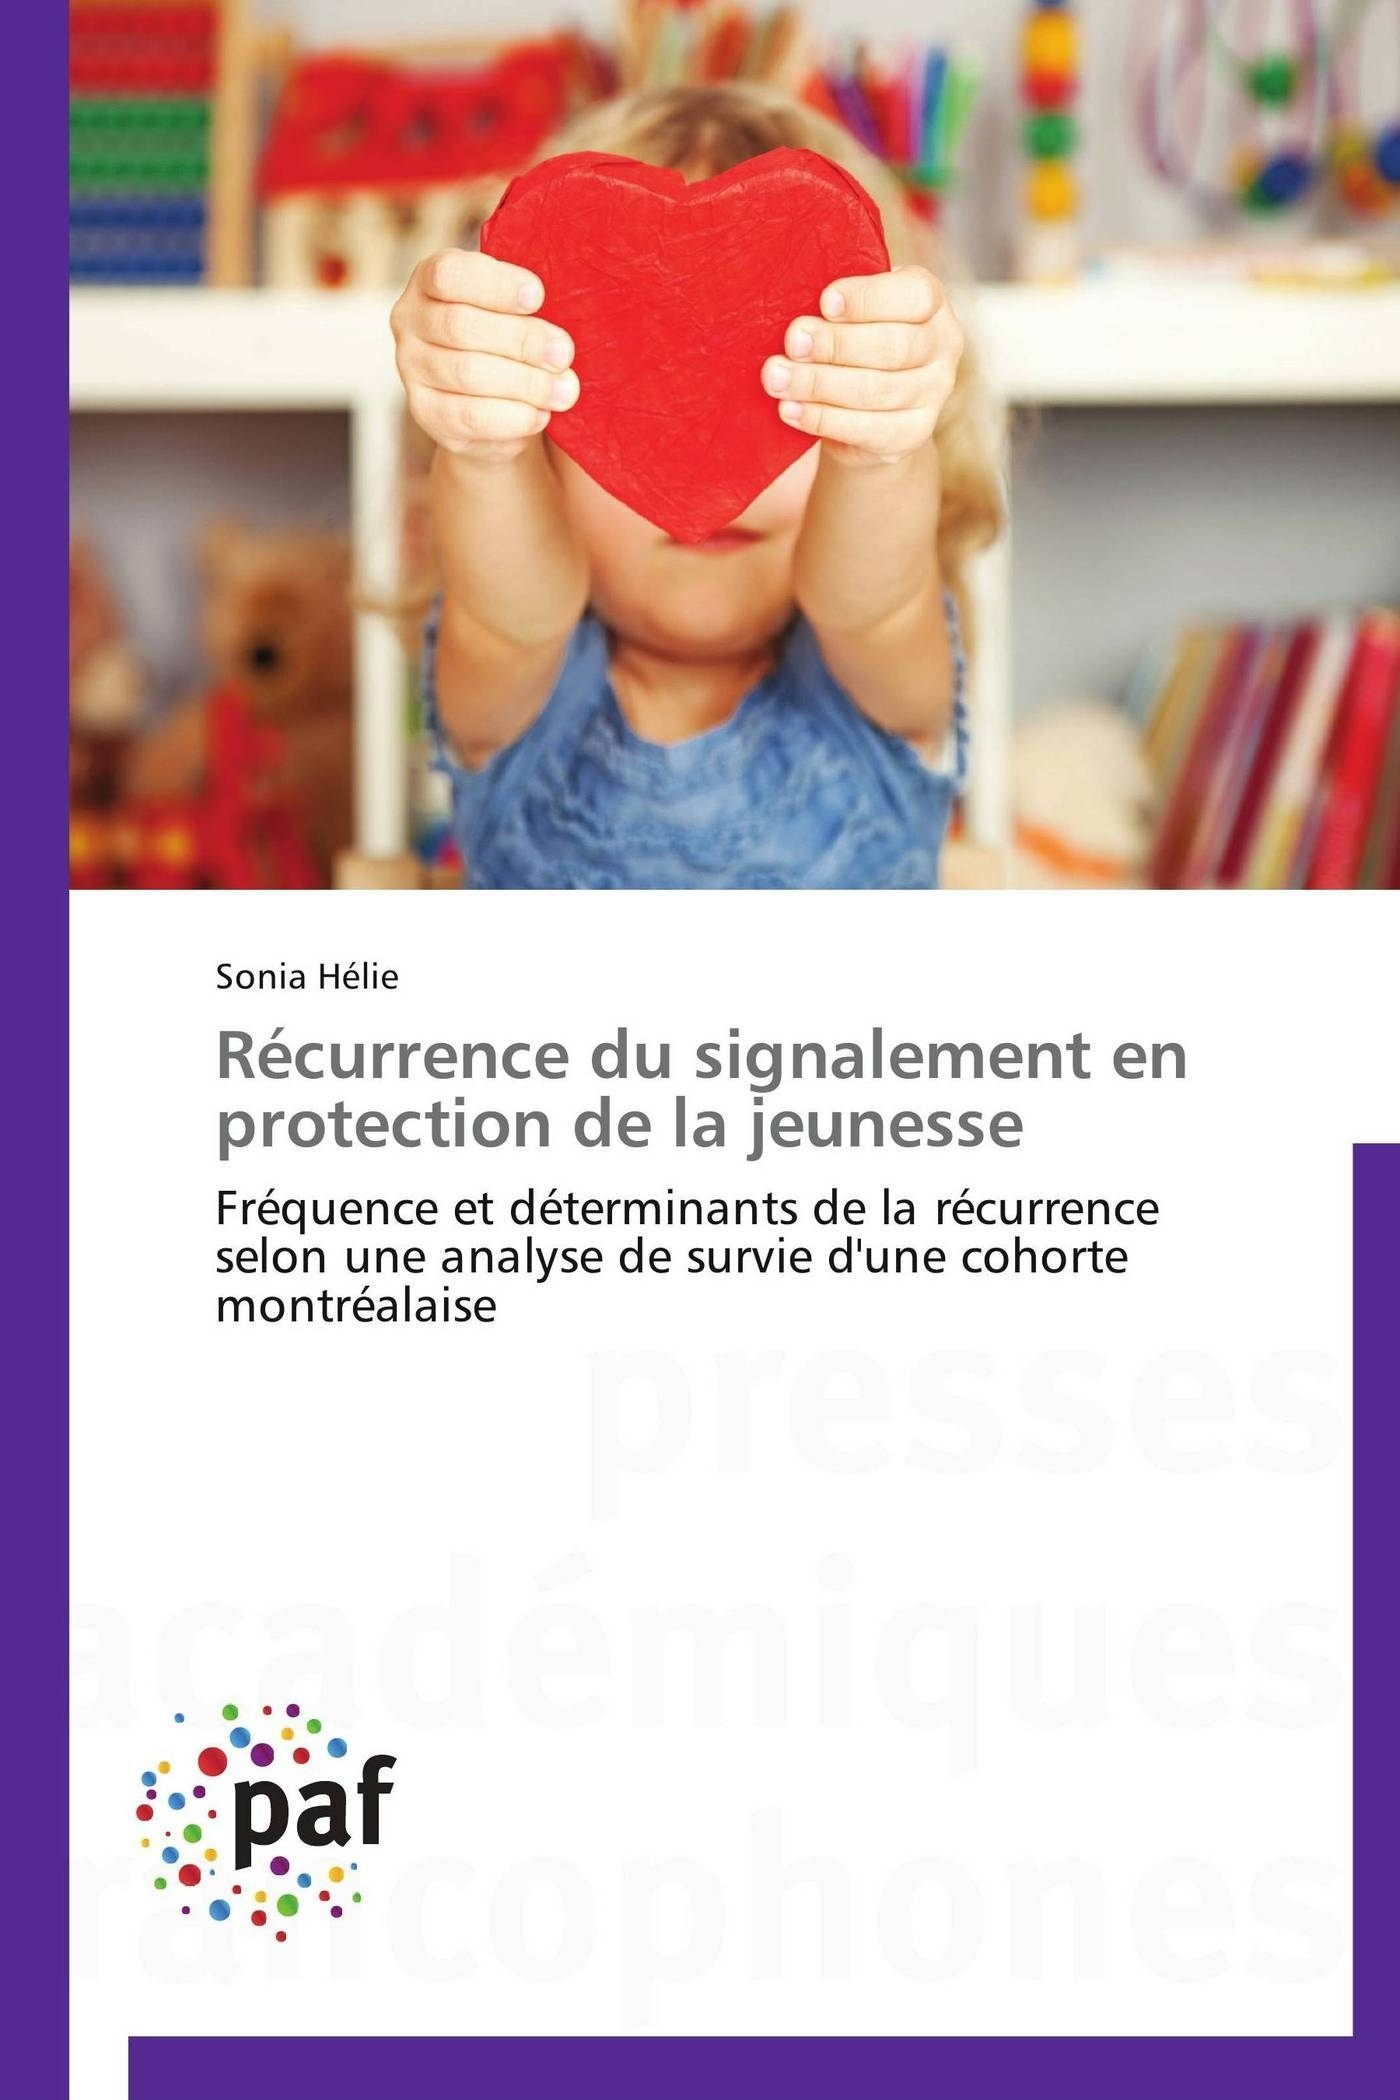 RECURRENCE DU SIGNALEMENT EN PROTECTION DE LA JEUNESSE